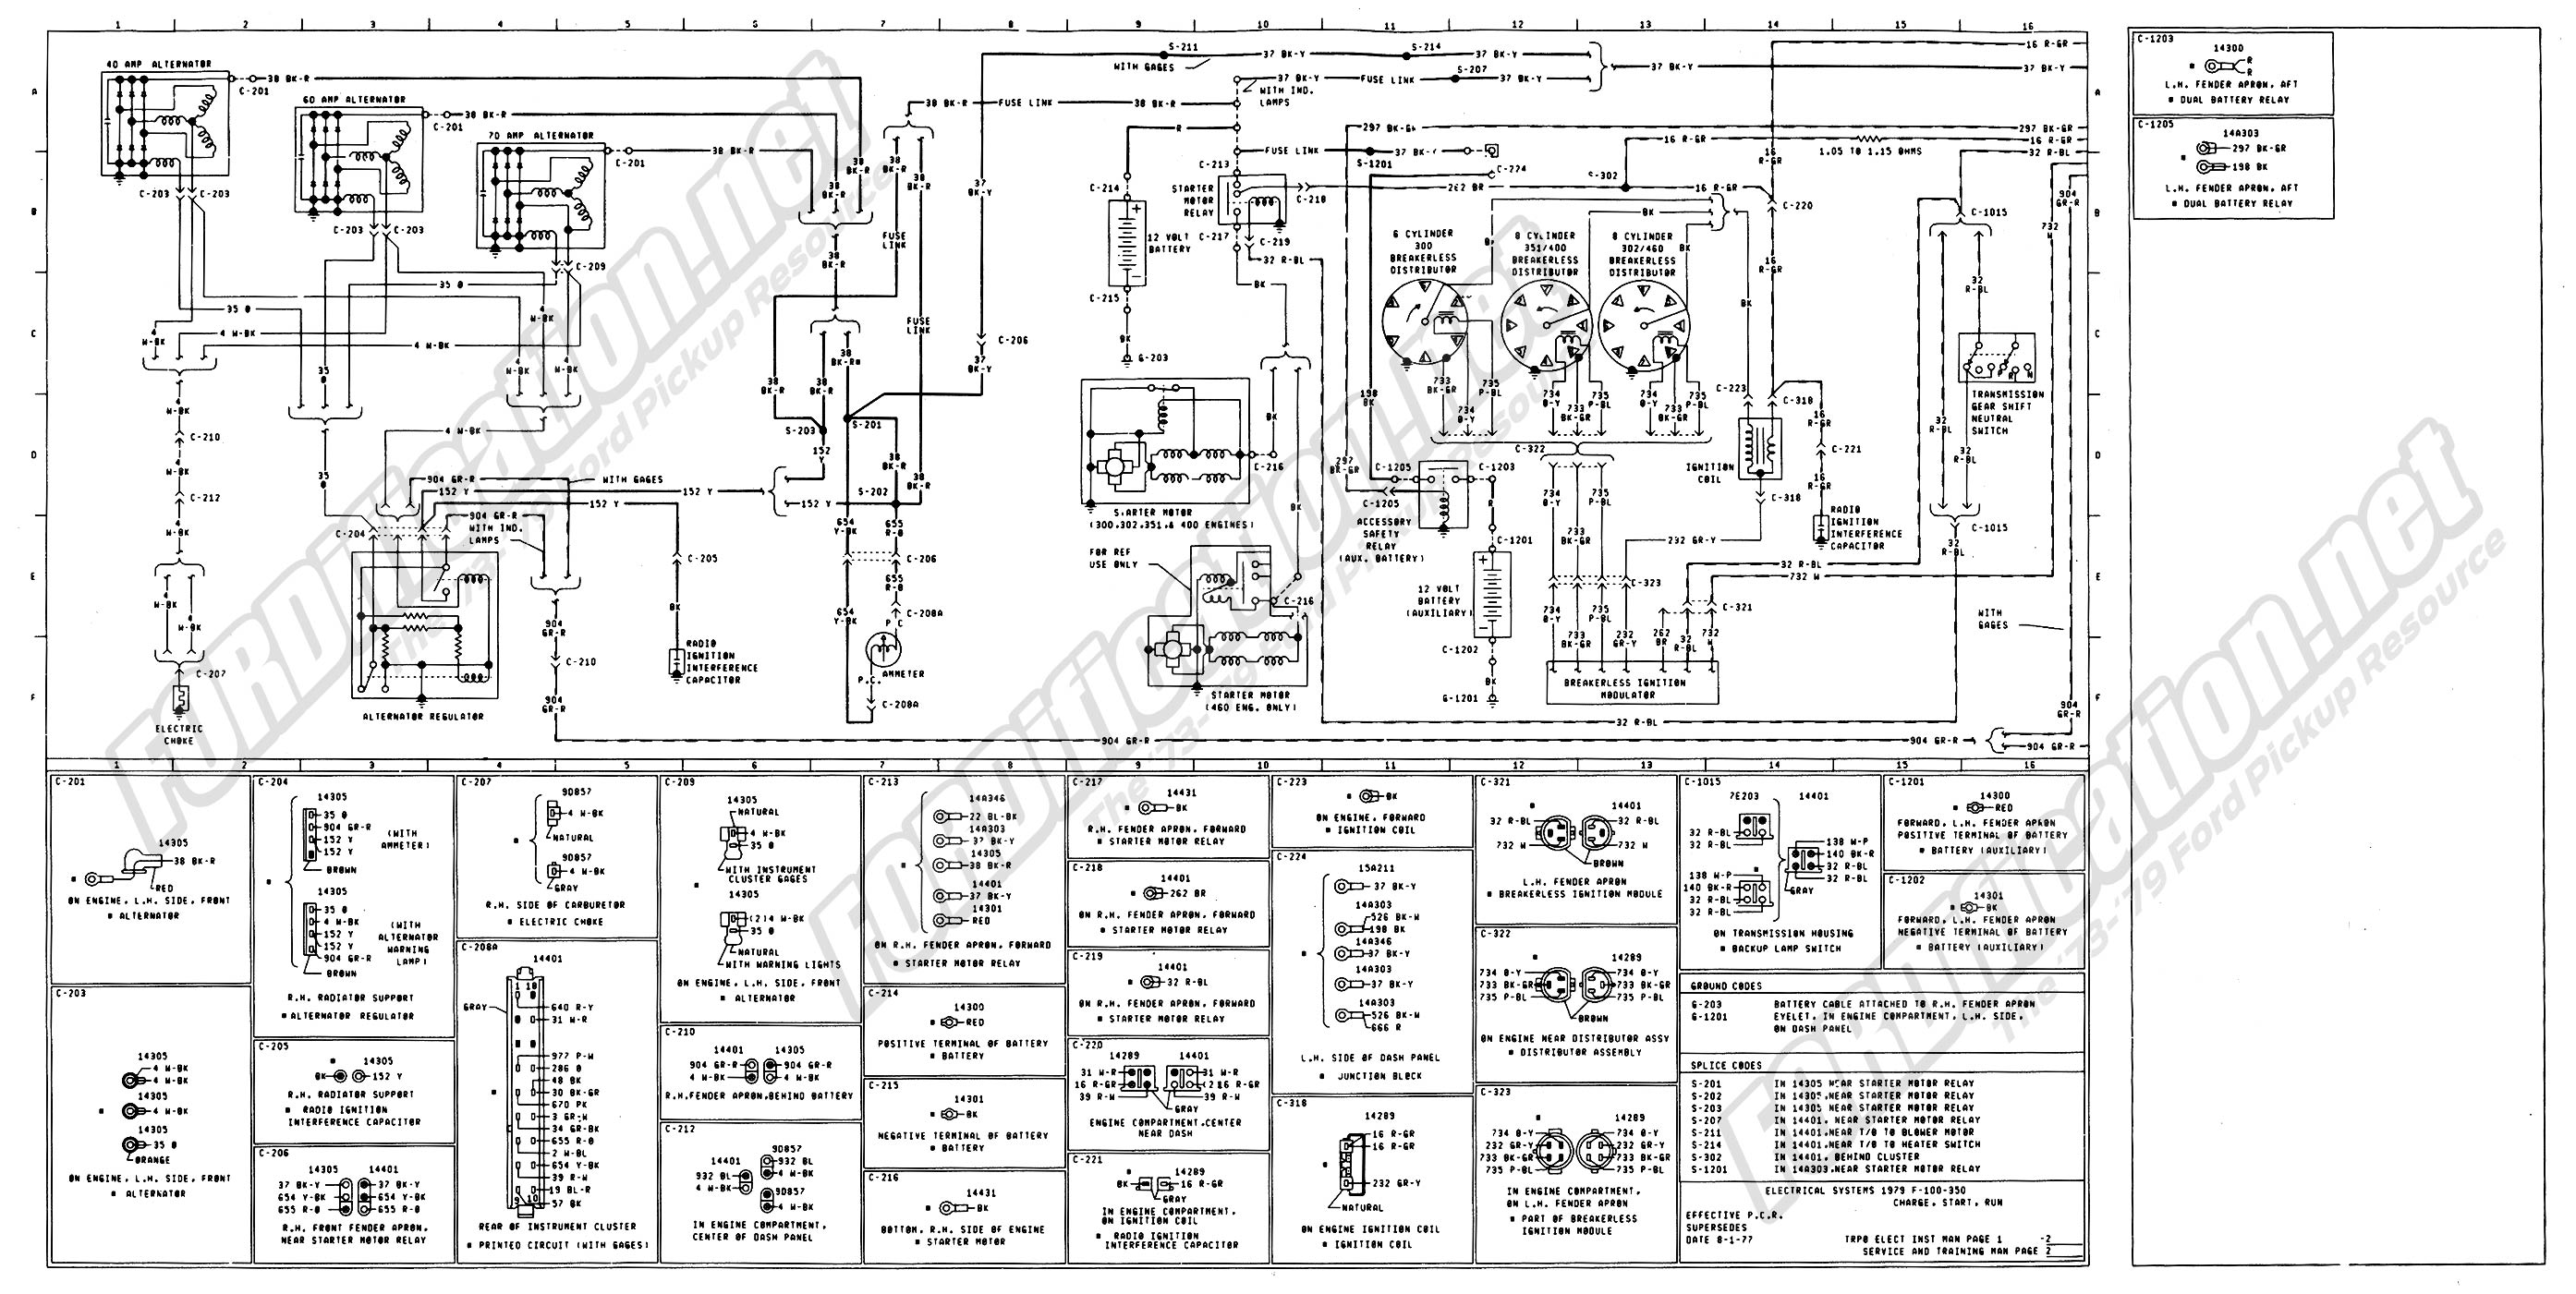 wiring_79master_2of9 1973 1979 ford truck wiring diagrams & schematics fordification net ford wiring harness diagrams at crackthecode.co